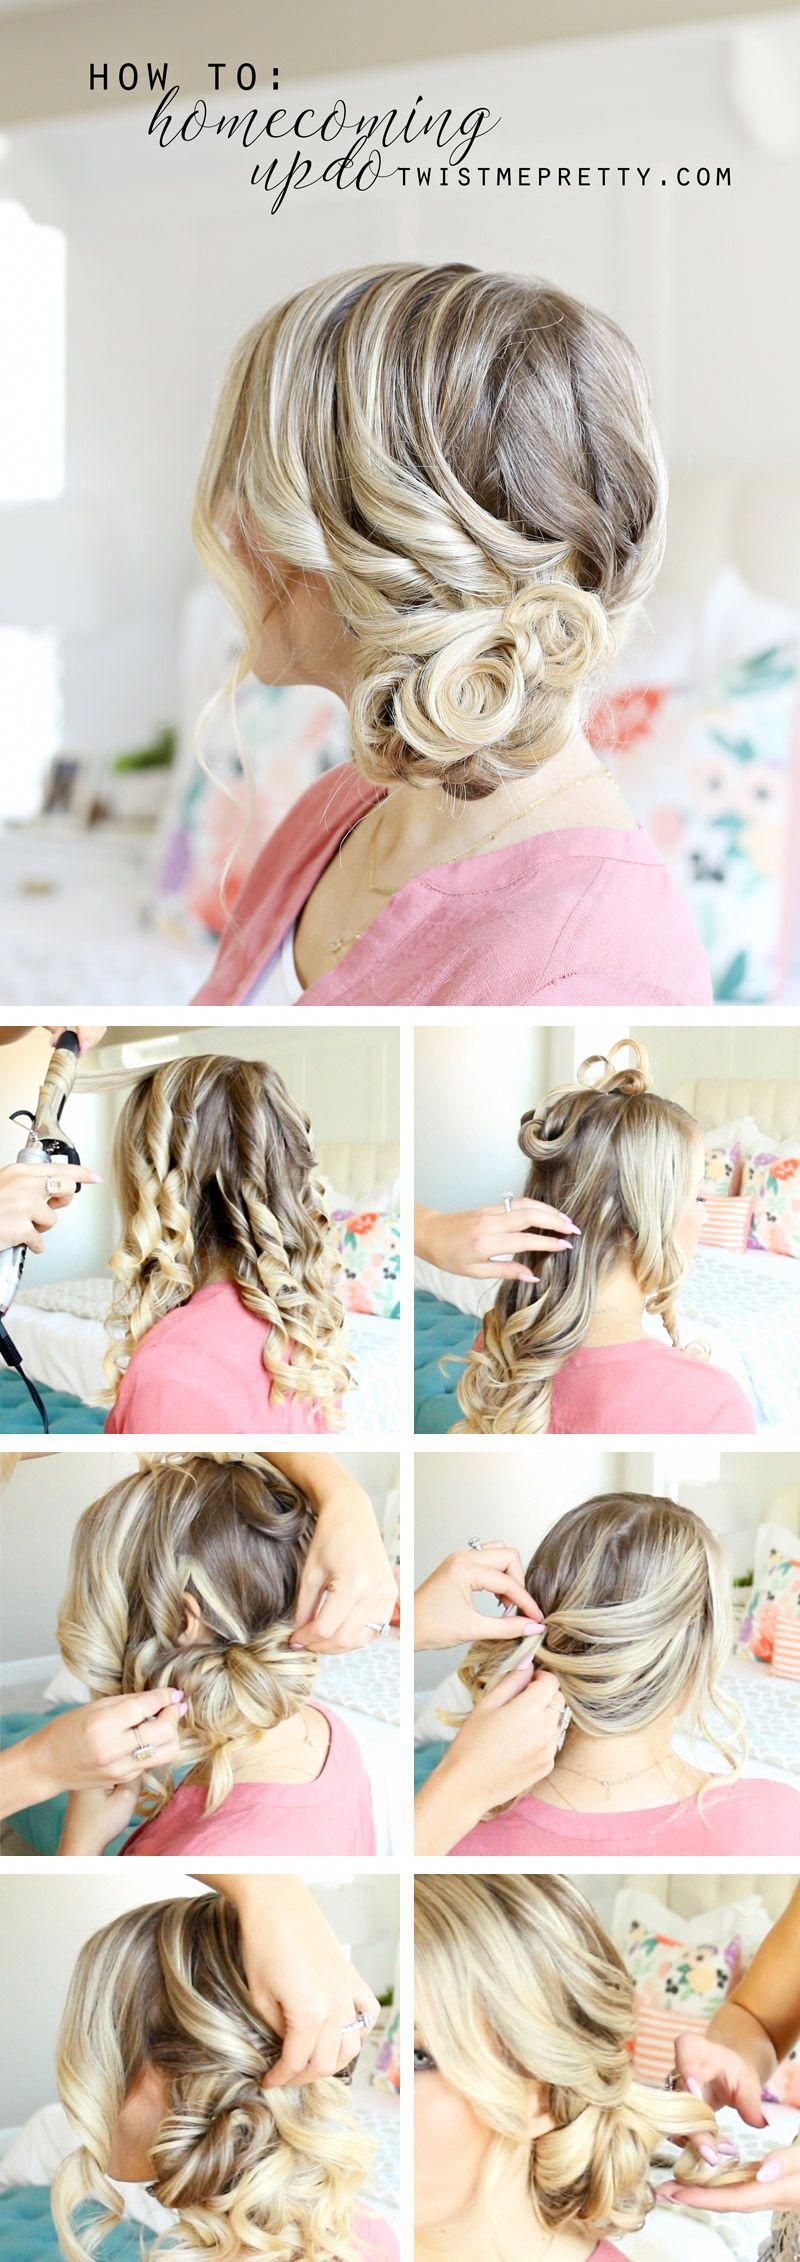 formal updo tutorial and tips